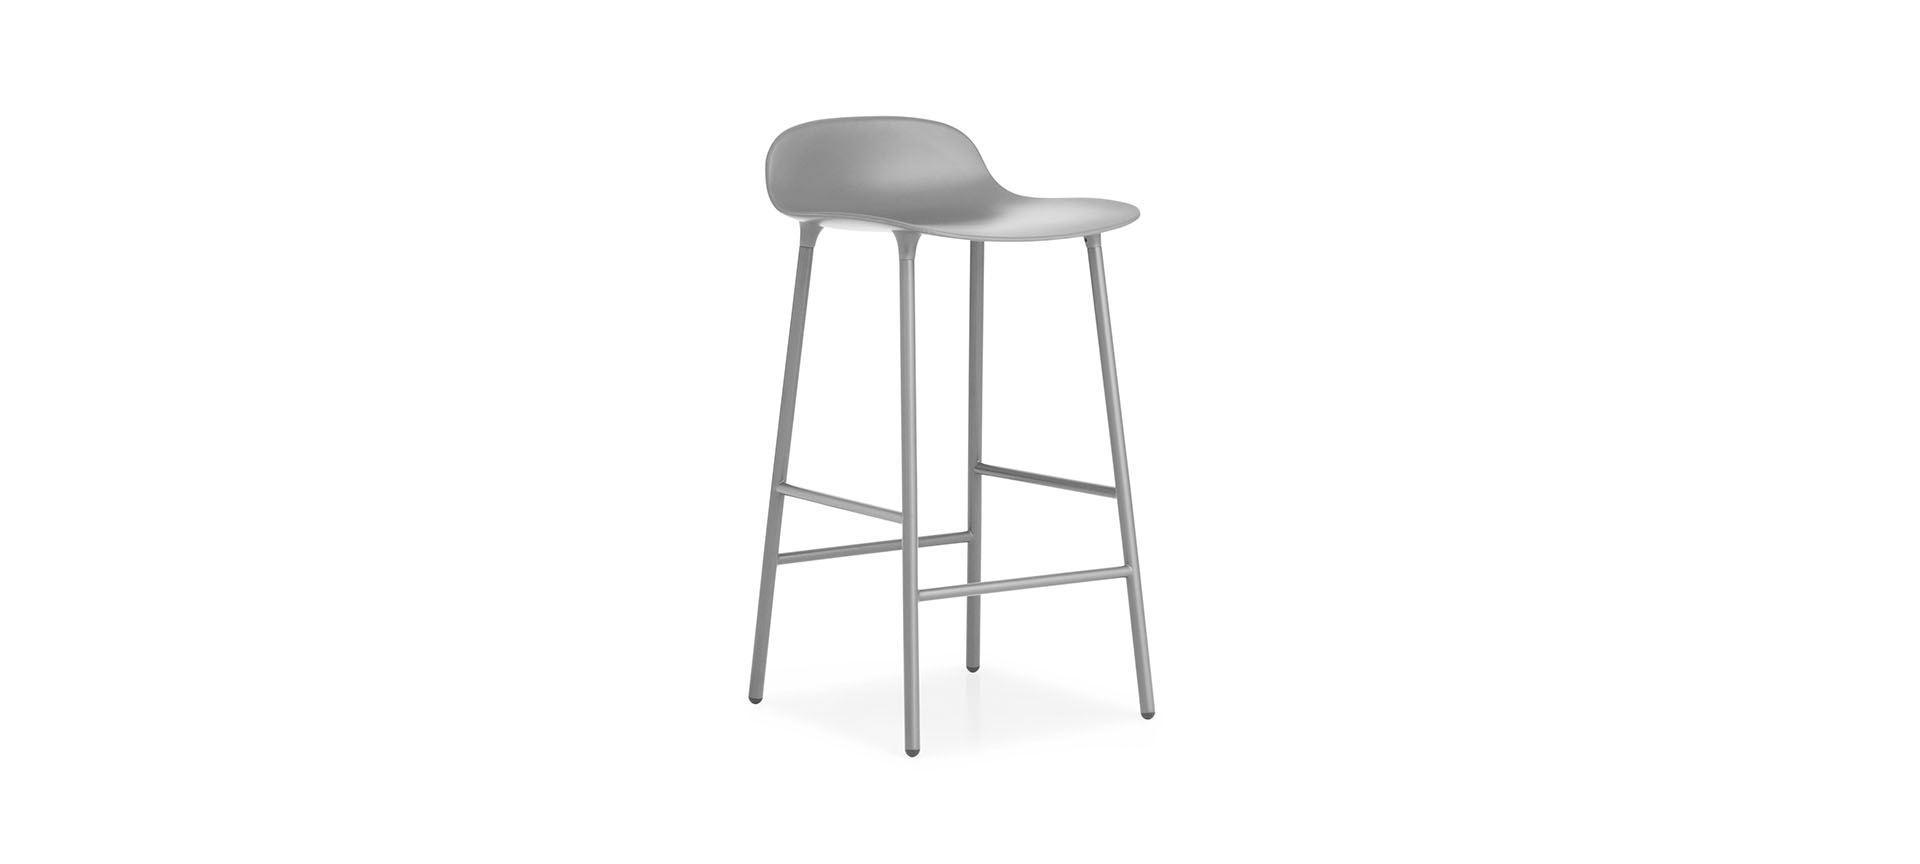 tabouret de bar form h65cm pieds metal normann copenhagen blou. Black Bedroom Furniture Sets. Home Design Ideas